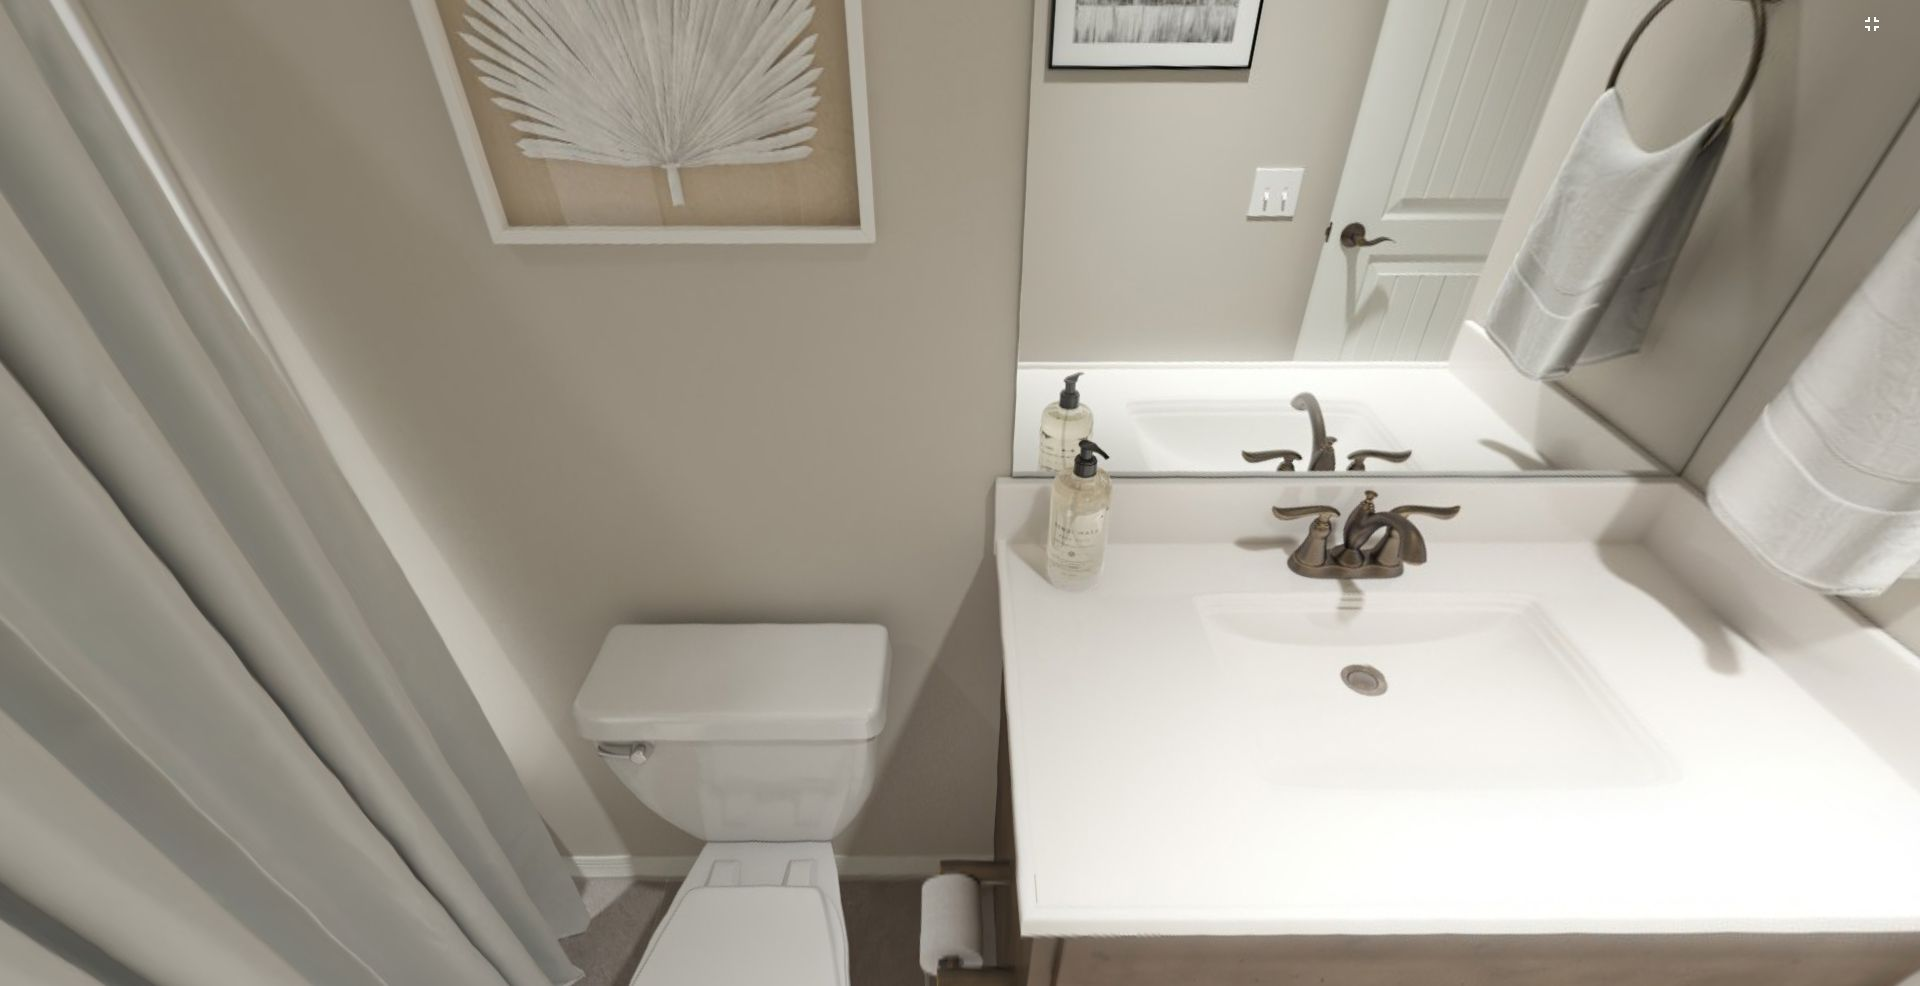 Bathroom featured in the Cadenza By Olthof Homes in Indianapolis, IN